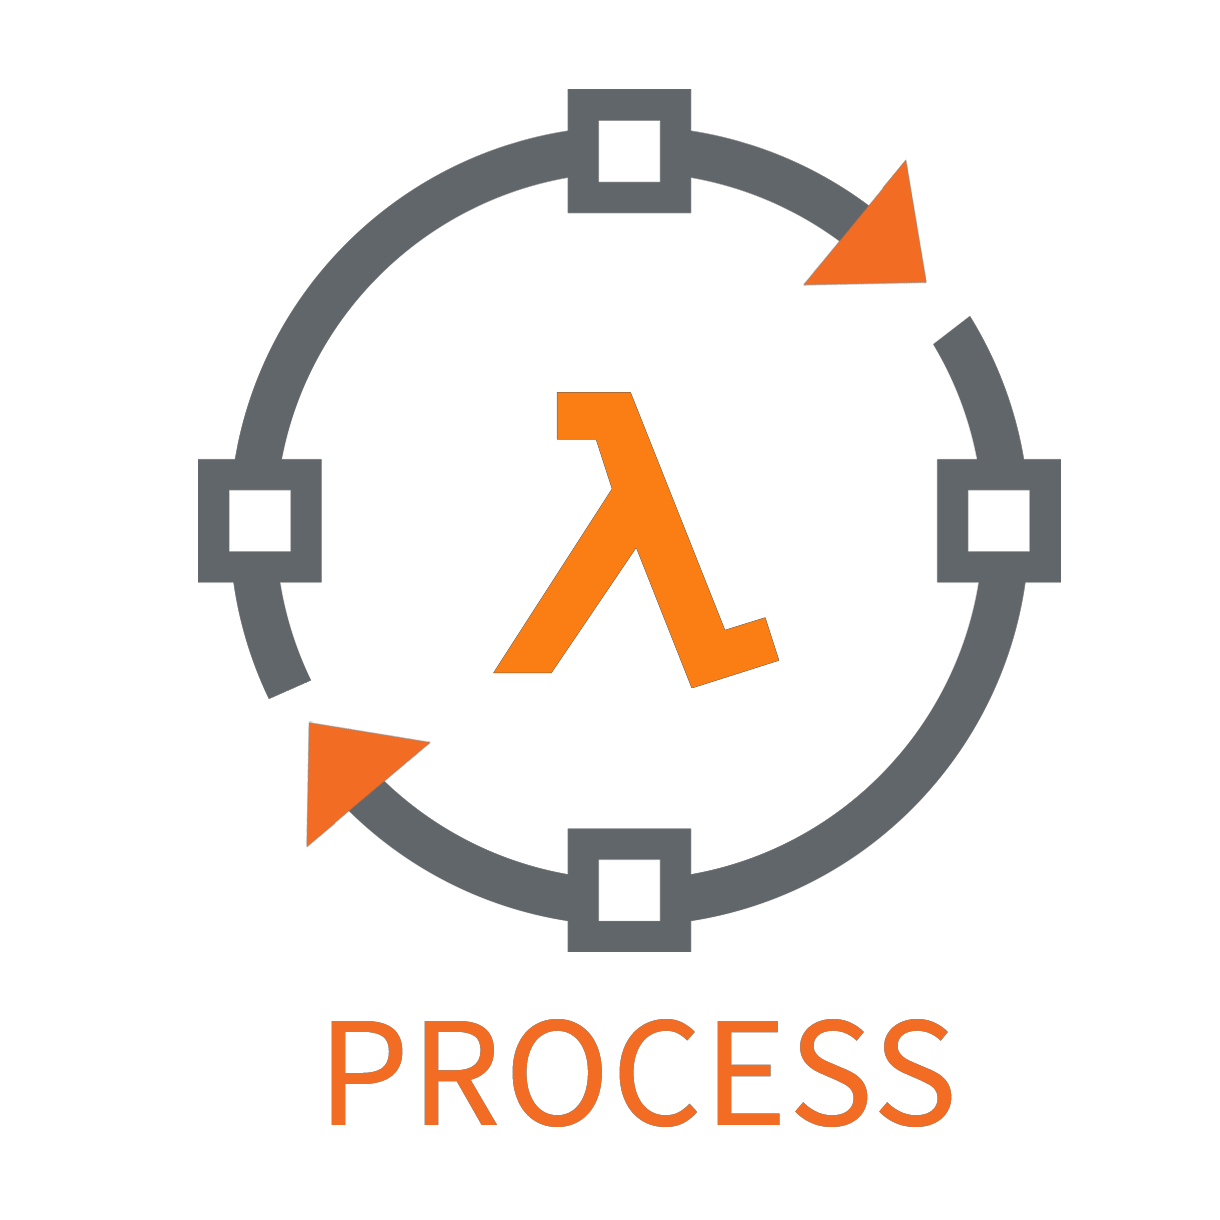 /development-flow-in-serverless-environment-from-the-trenches-d42021b7aef0 feature image